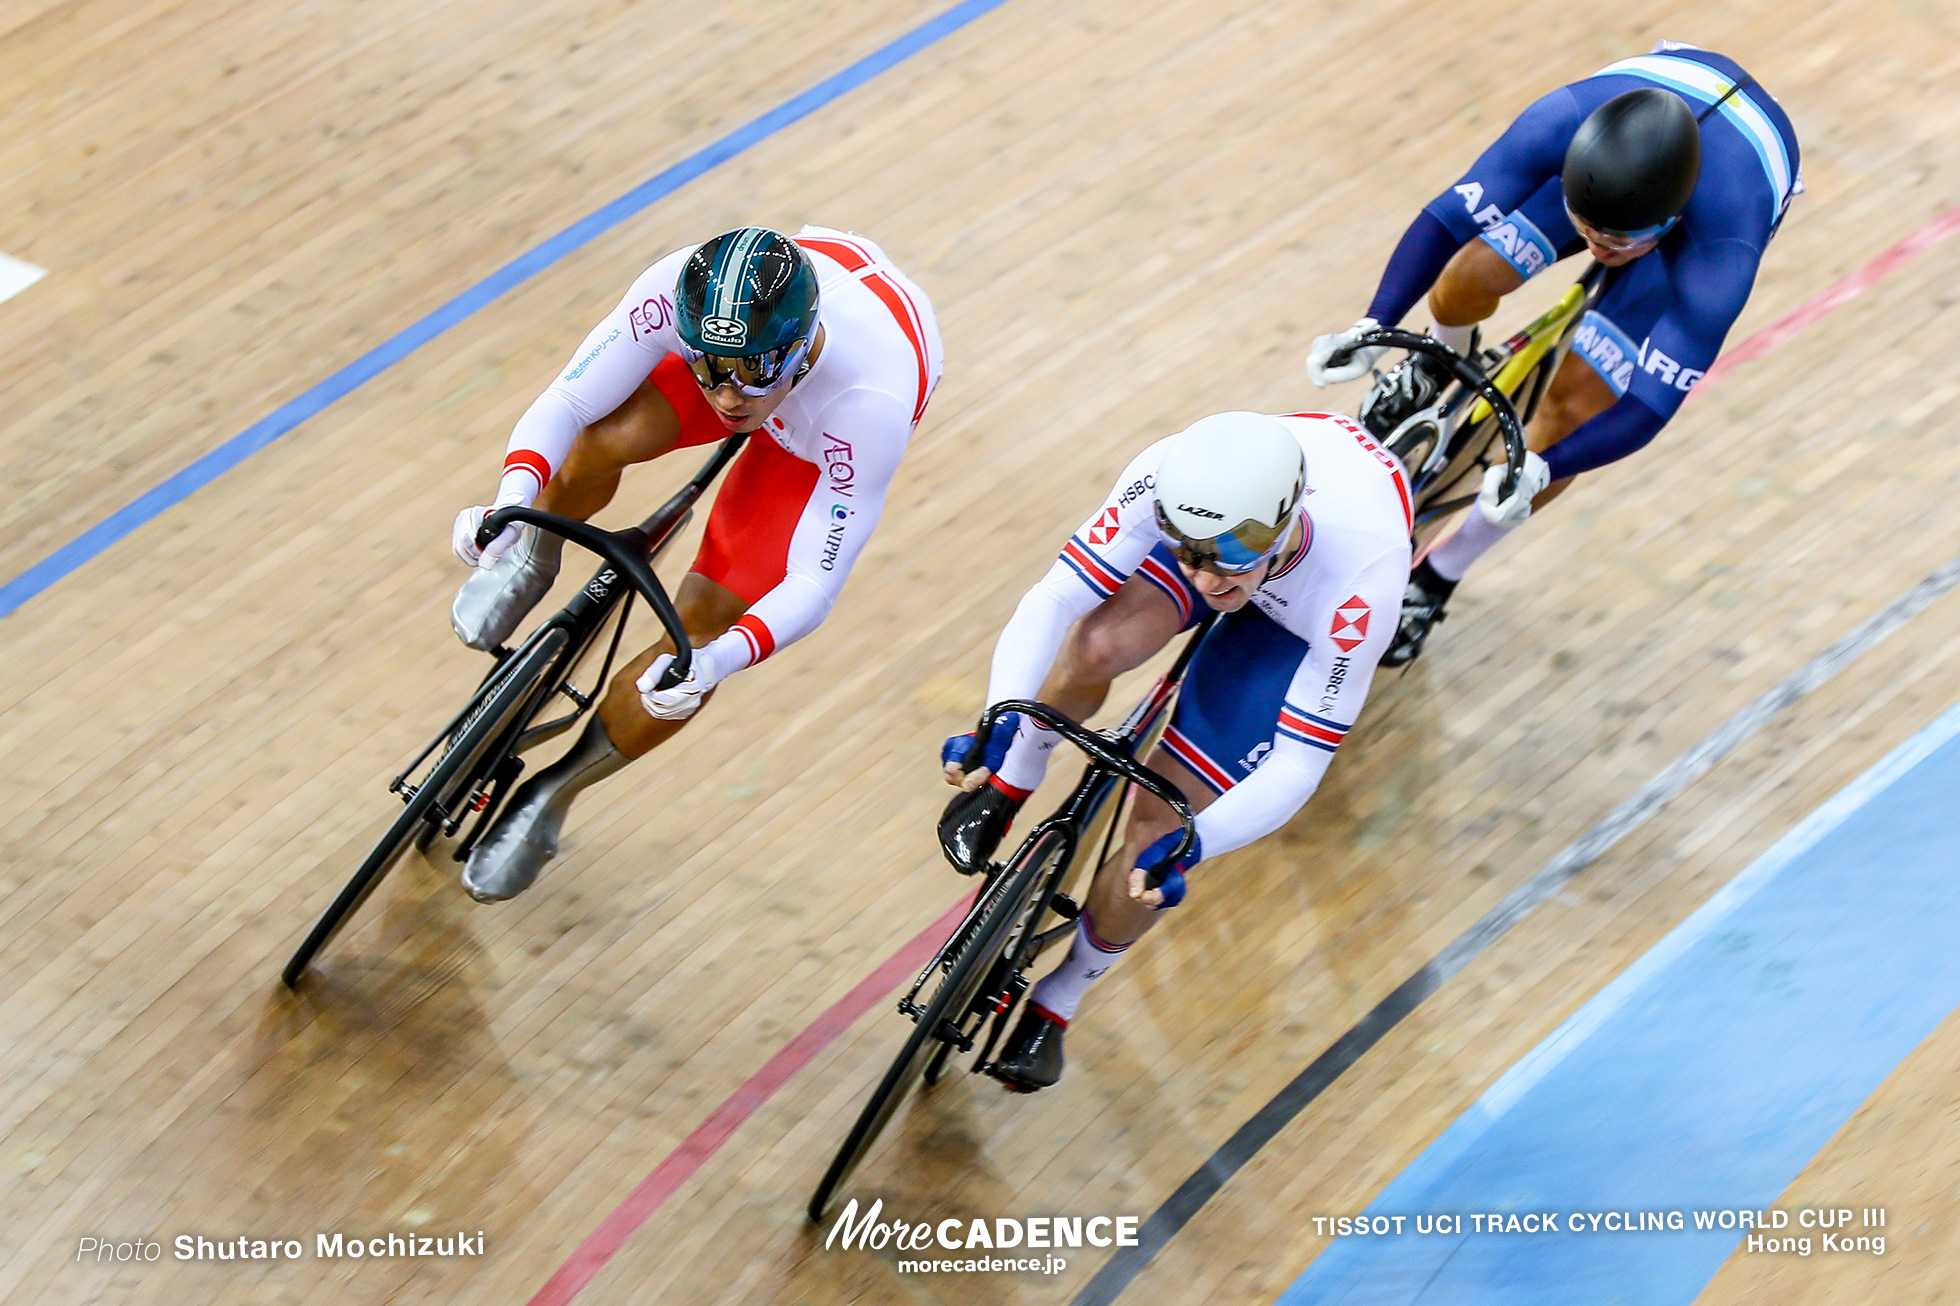 1st Round / Men's Keirin / TISSOT UCI TRACK CYCLING WORLD CUP III, Hong Kong, 新田祐大 Jason KENNY ジェイソン・ケニー